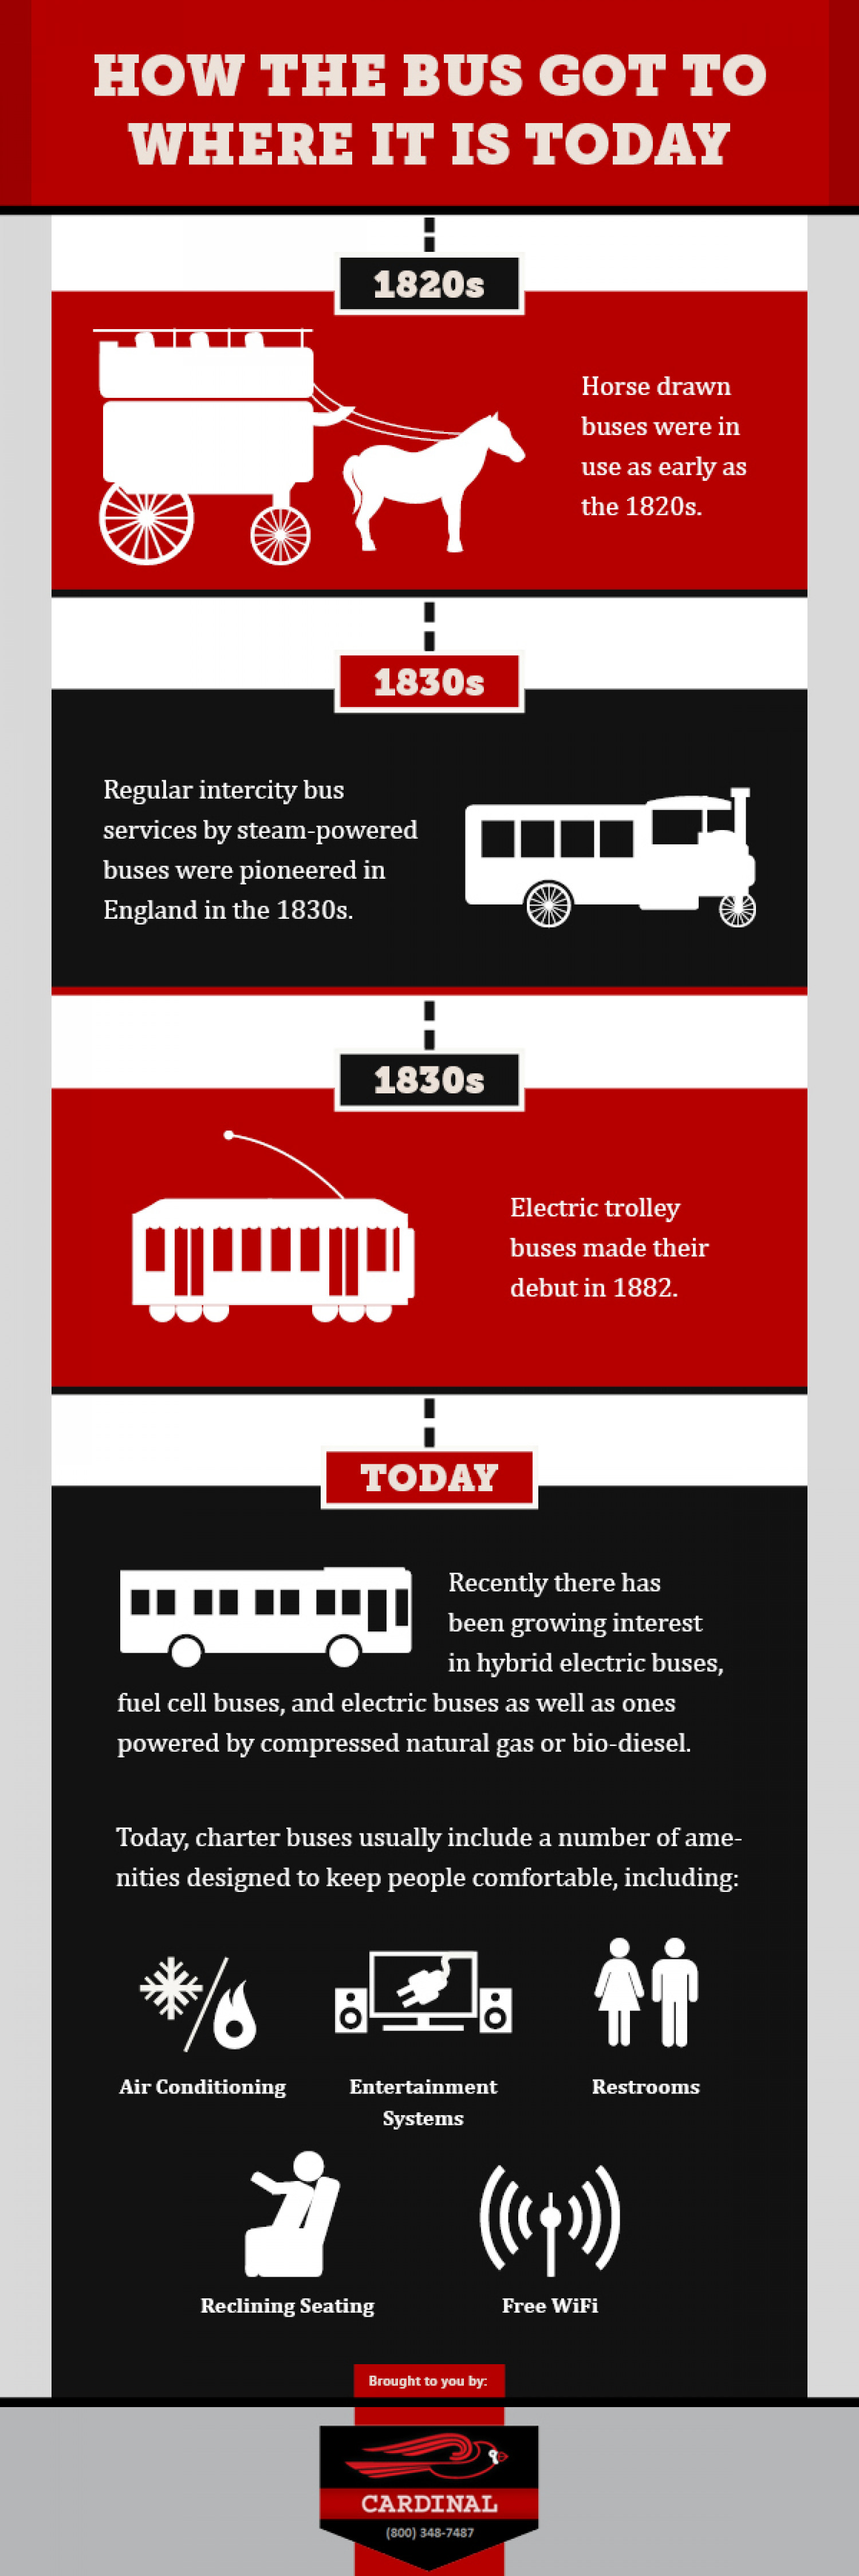 How the Bus Got to Where it is Today Infographic